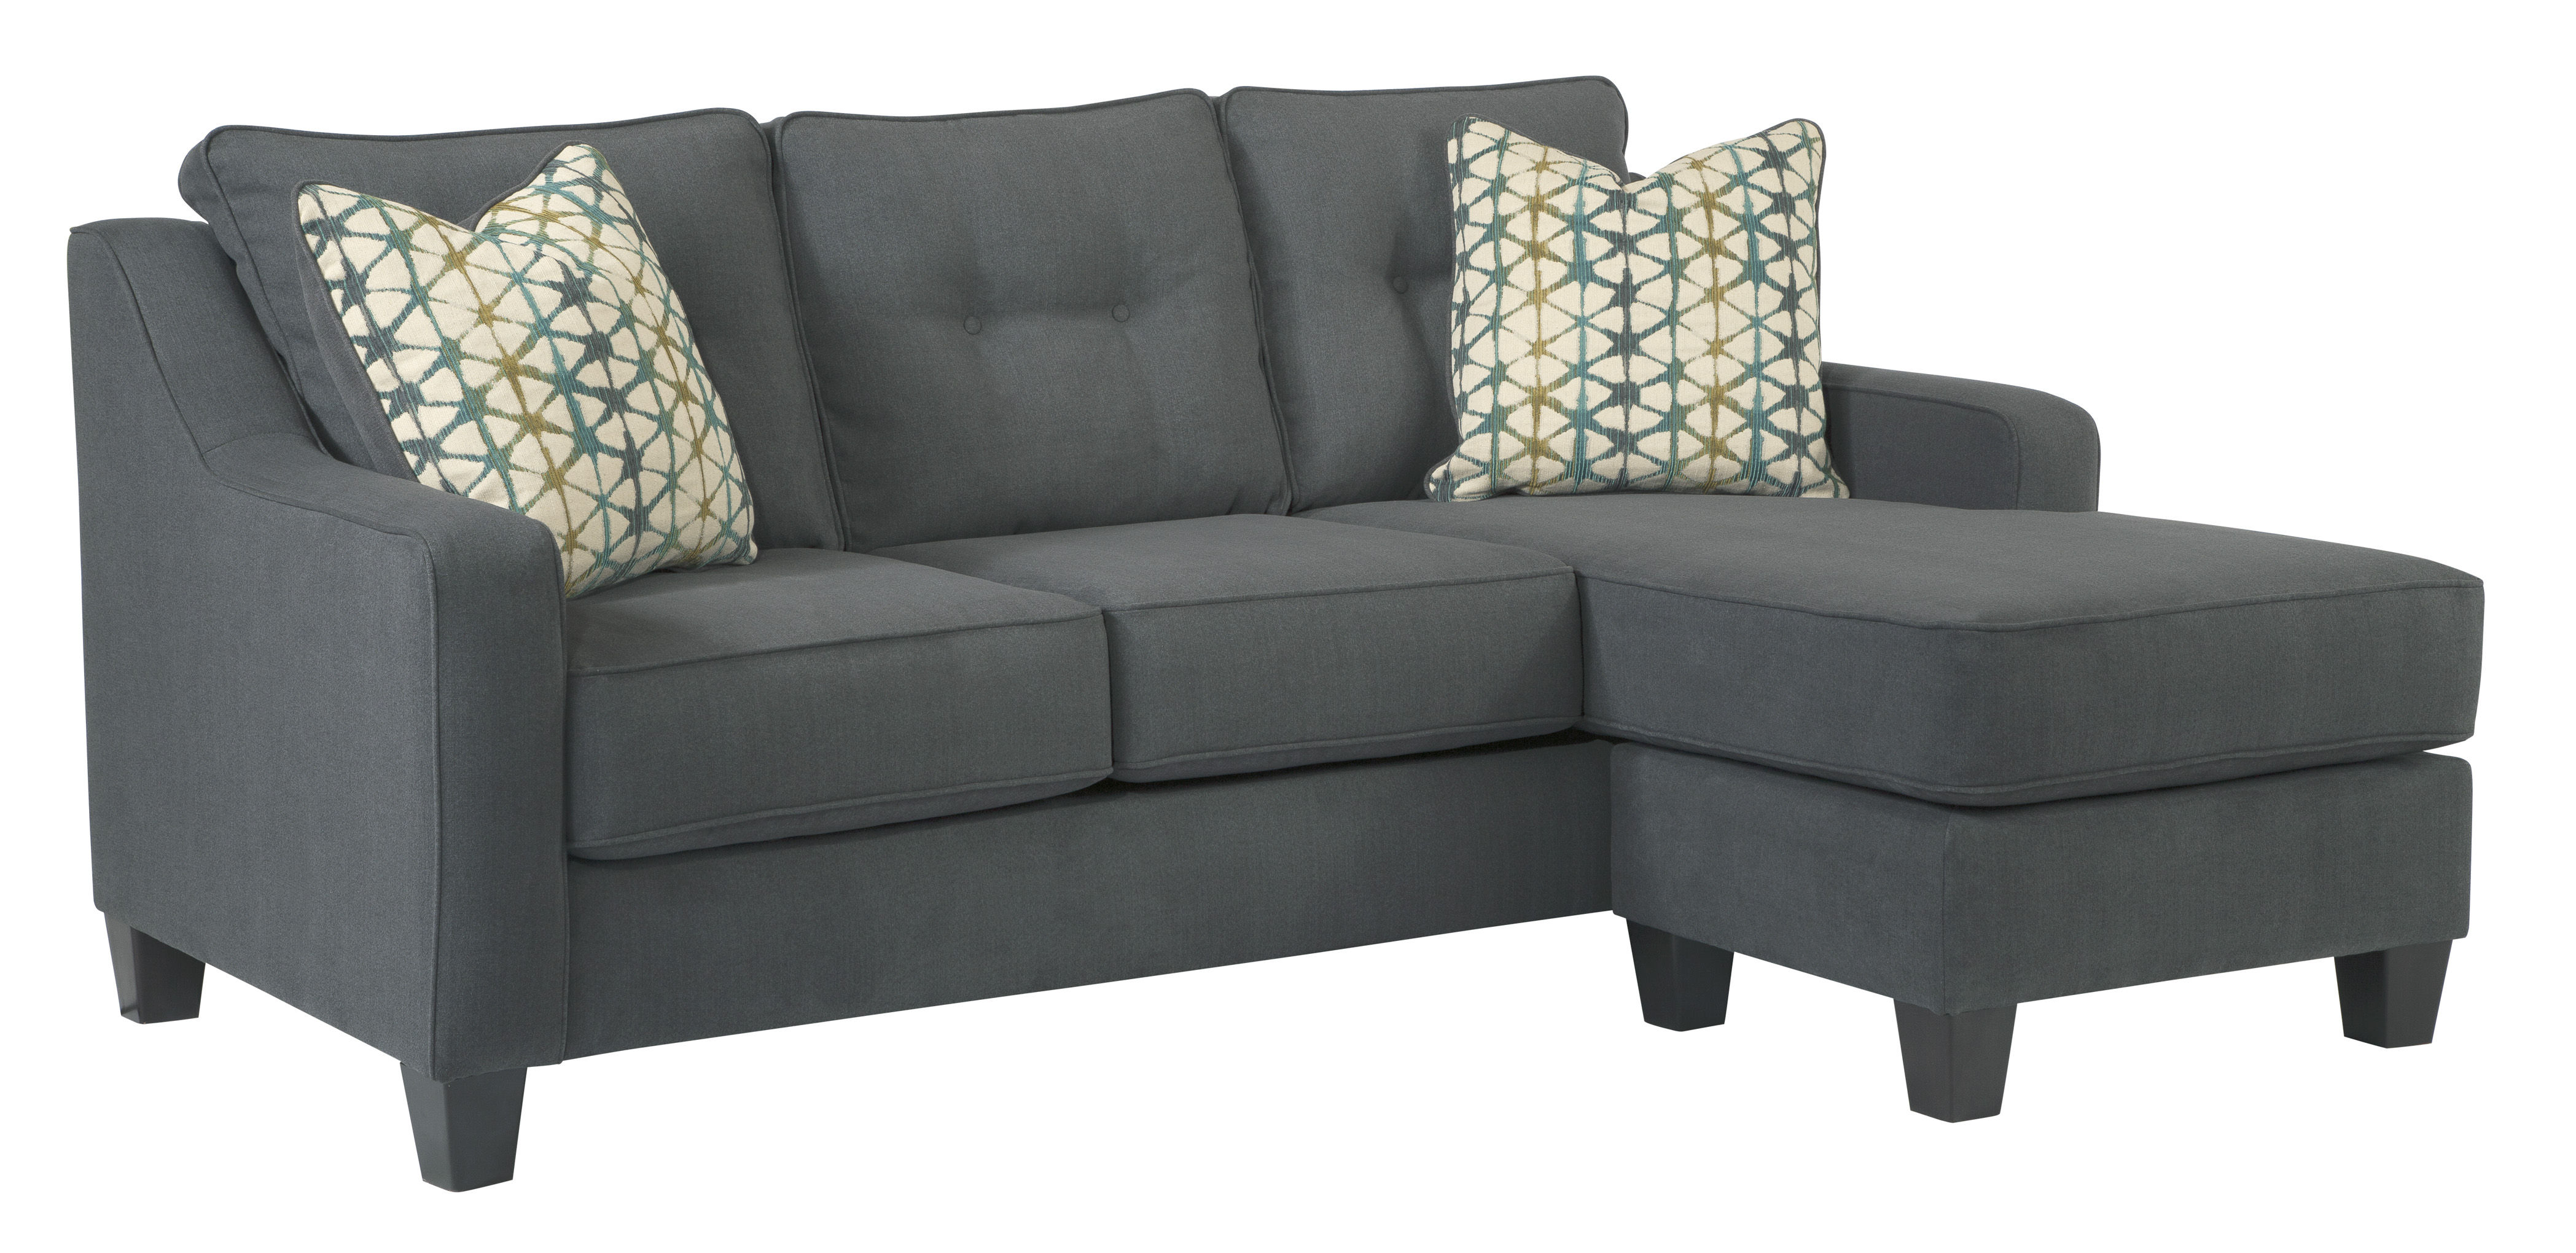 Marvelous Ashley Furniture Shayla Dark Gray Sofa Chaise The Classy Home Download Free Architecture Designs Scobabritishbridgeorg